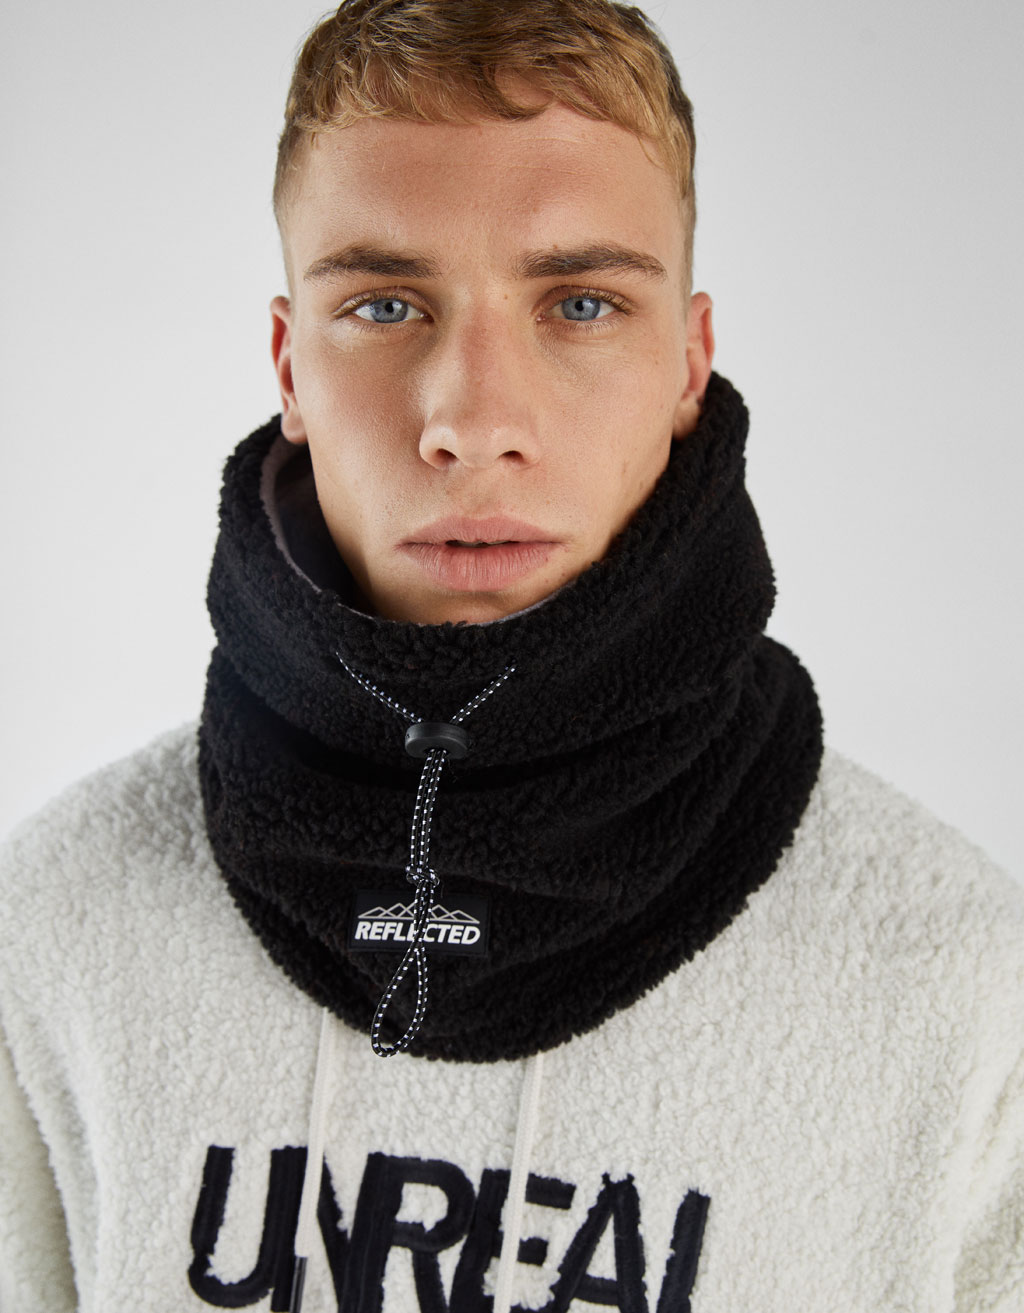 Reversible fleece neck warmer